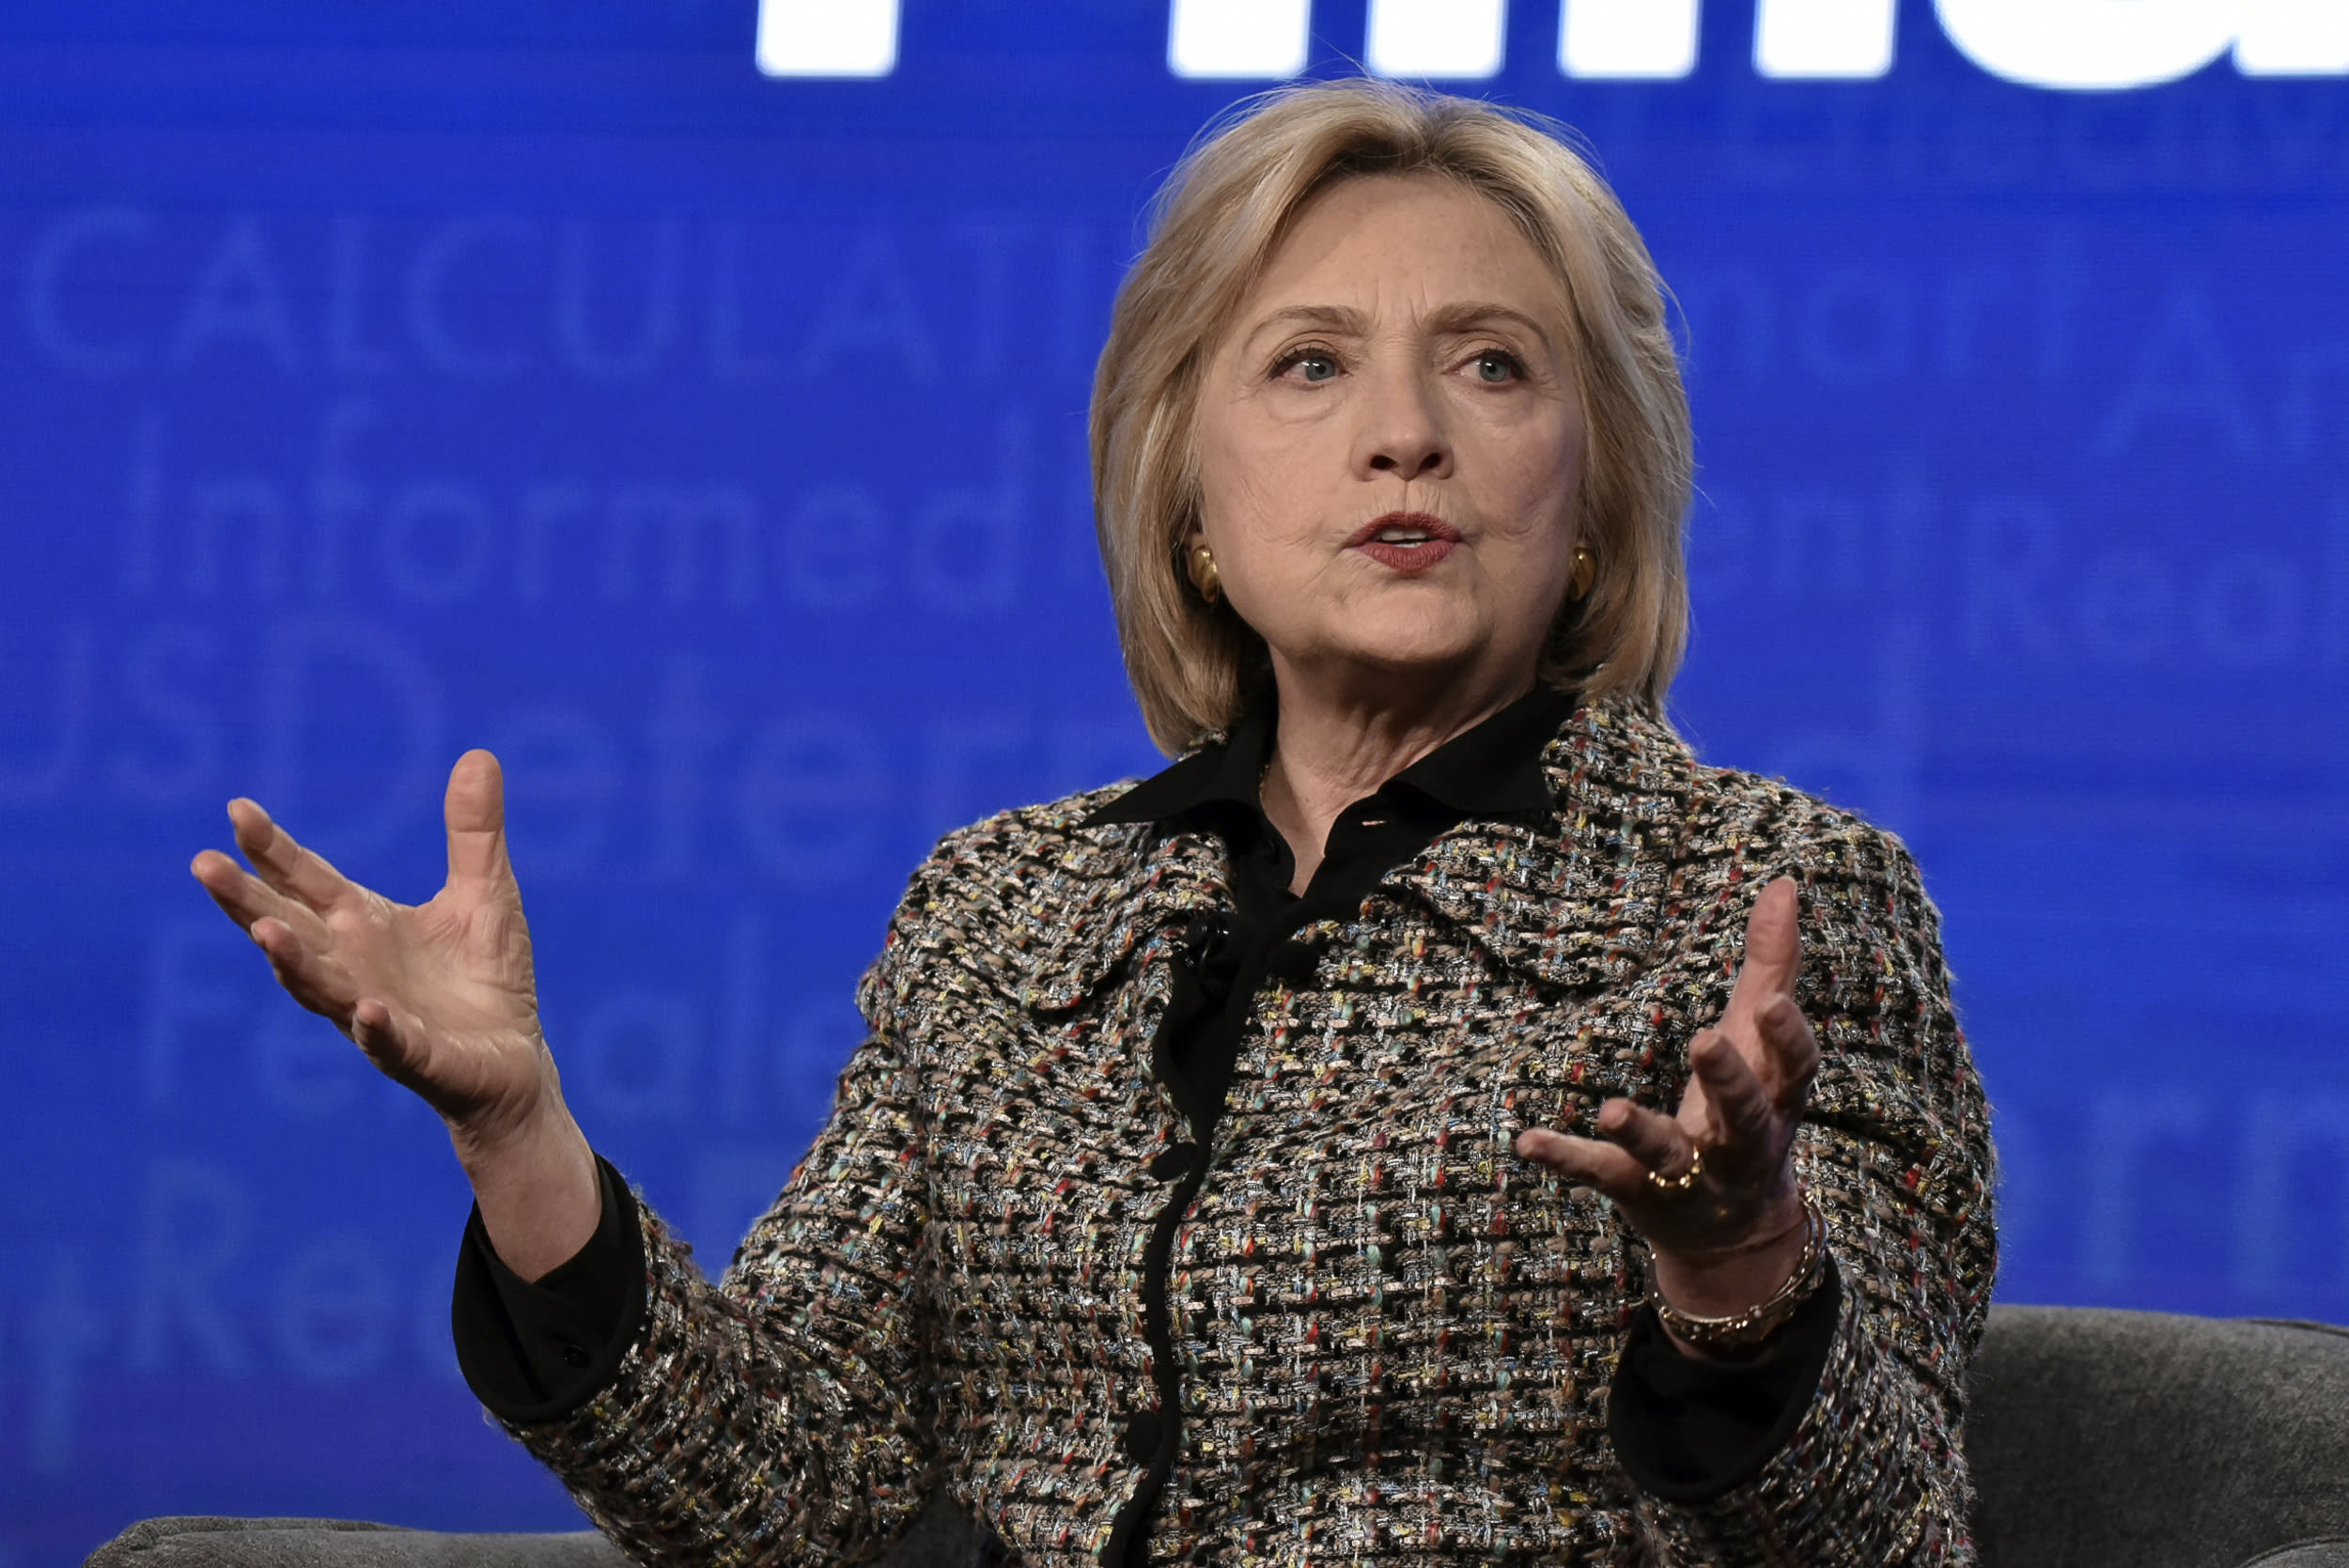 A Hillary Clinton Docu-Series Is Coming To Hulu: Watch The Trailer